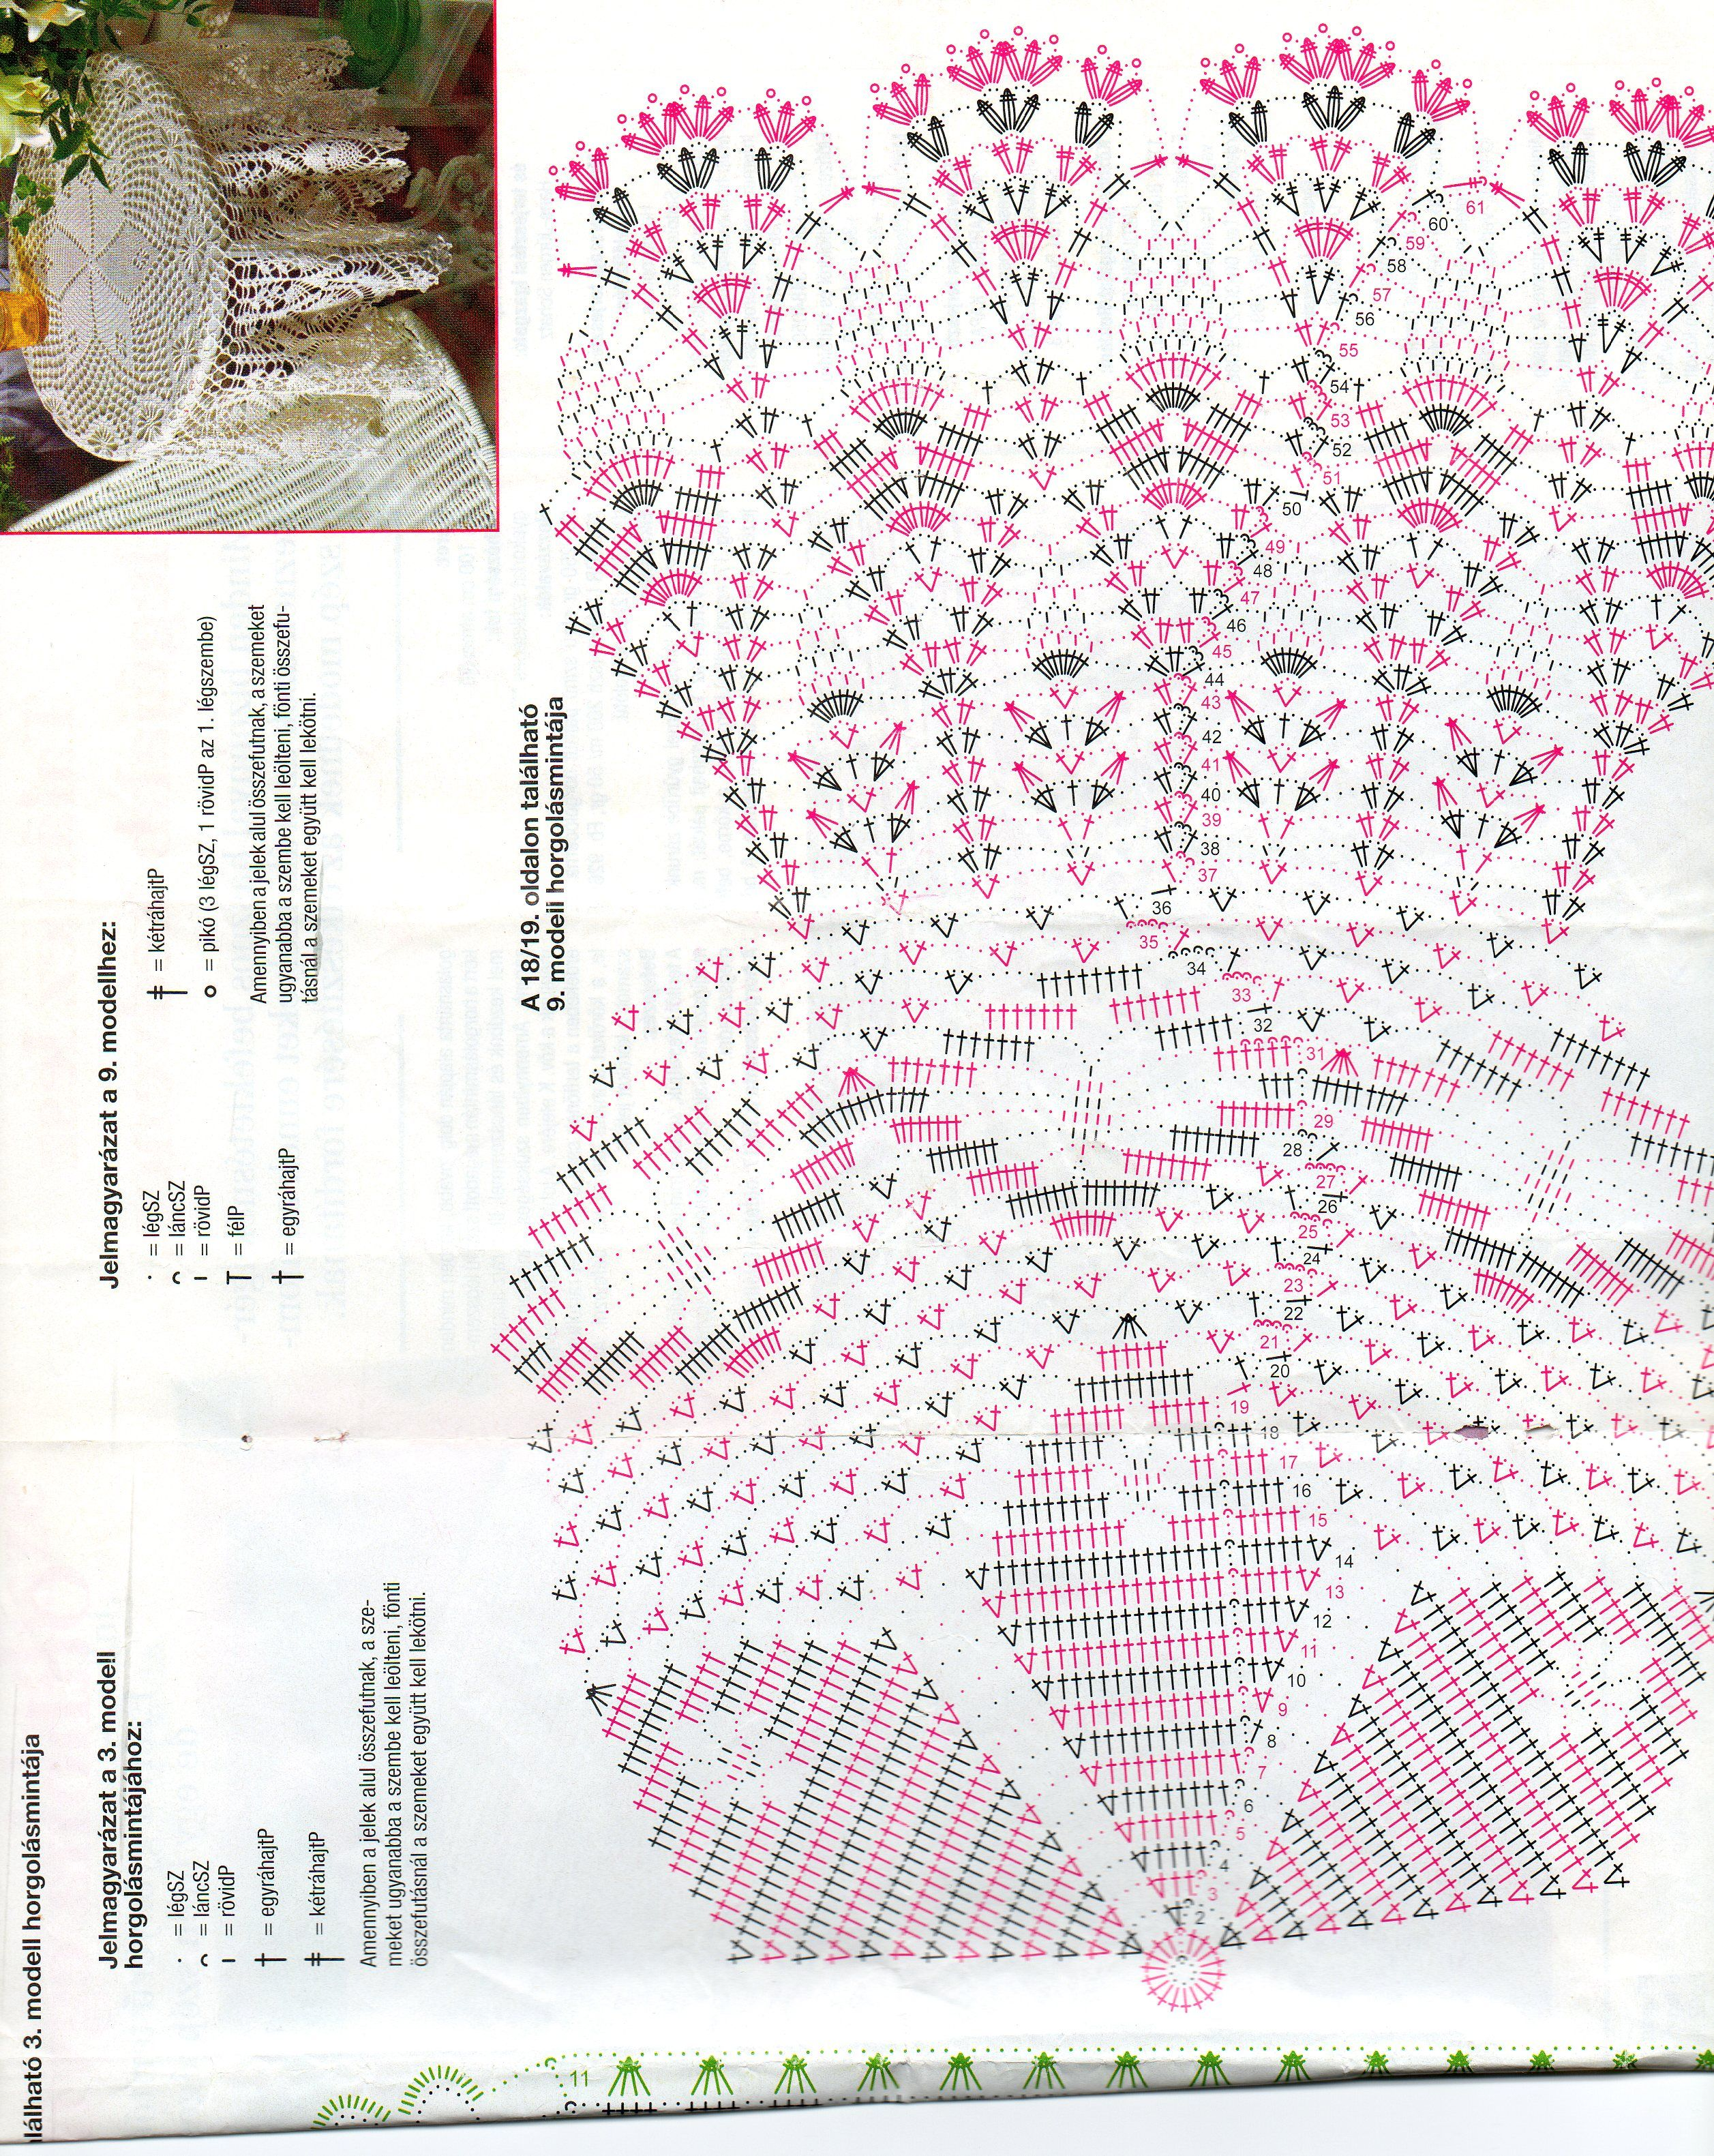 Crochet Doily Patterns With Diagram Wiring Toyota 1jz Gte Vvti Star And Pineapples Tablecloth